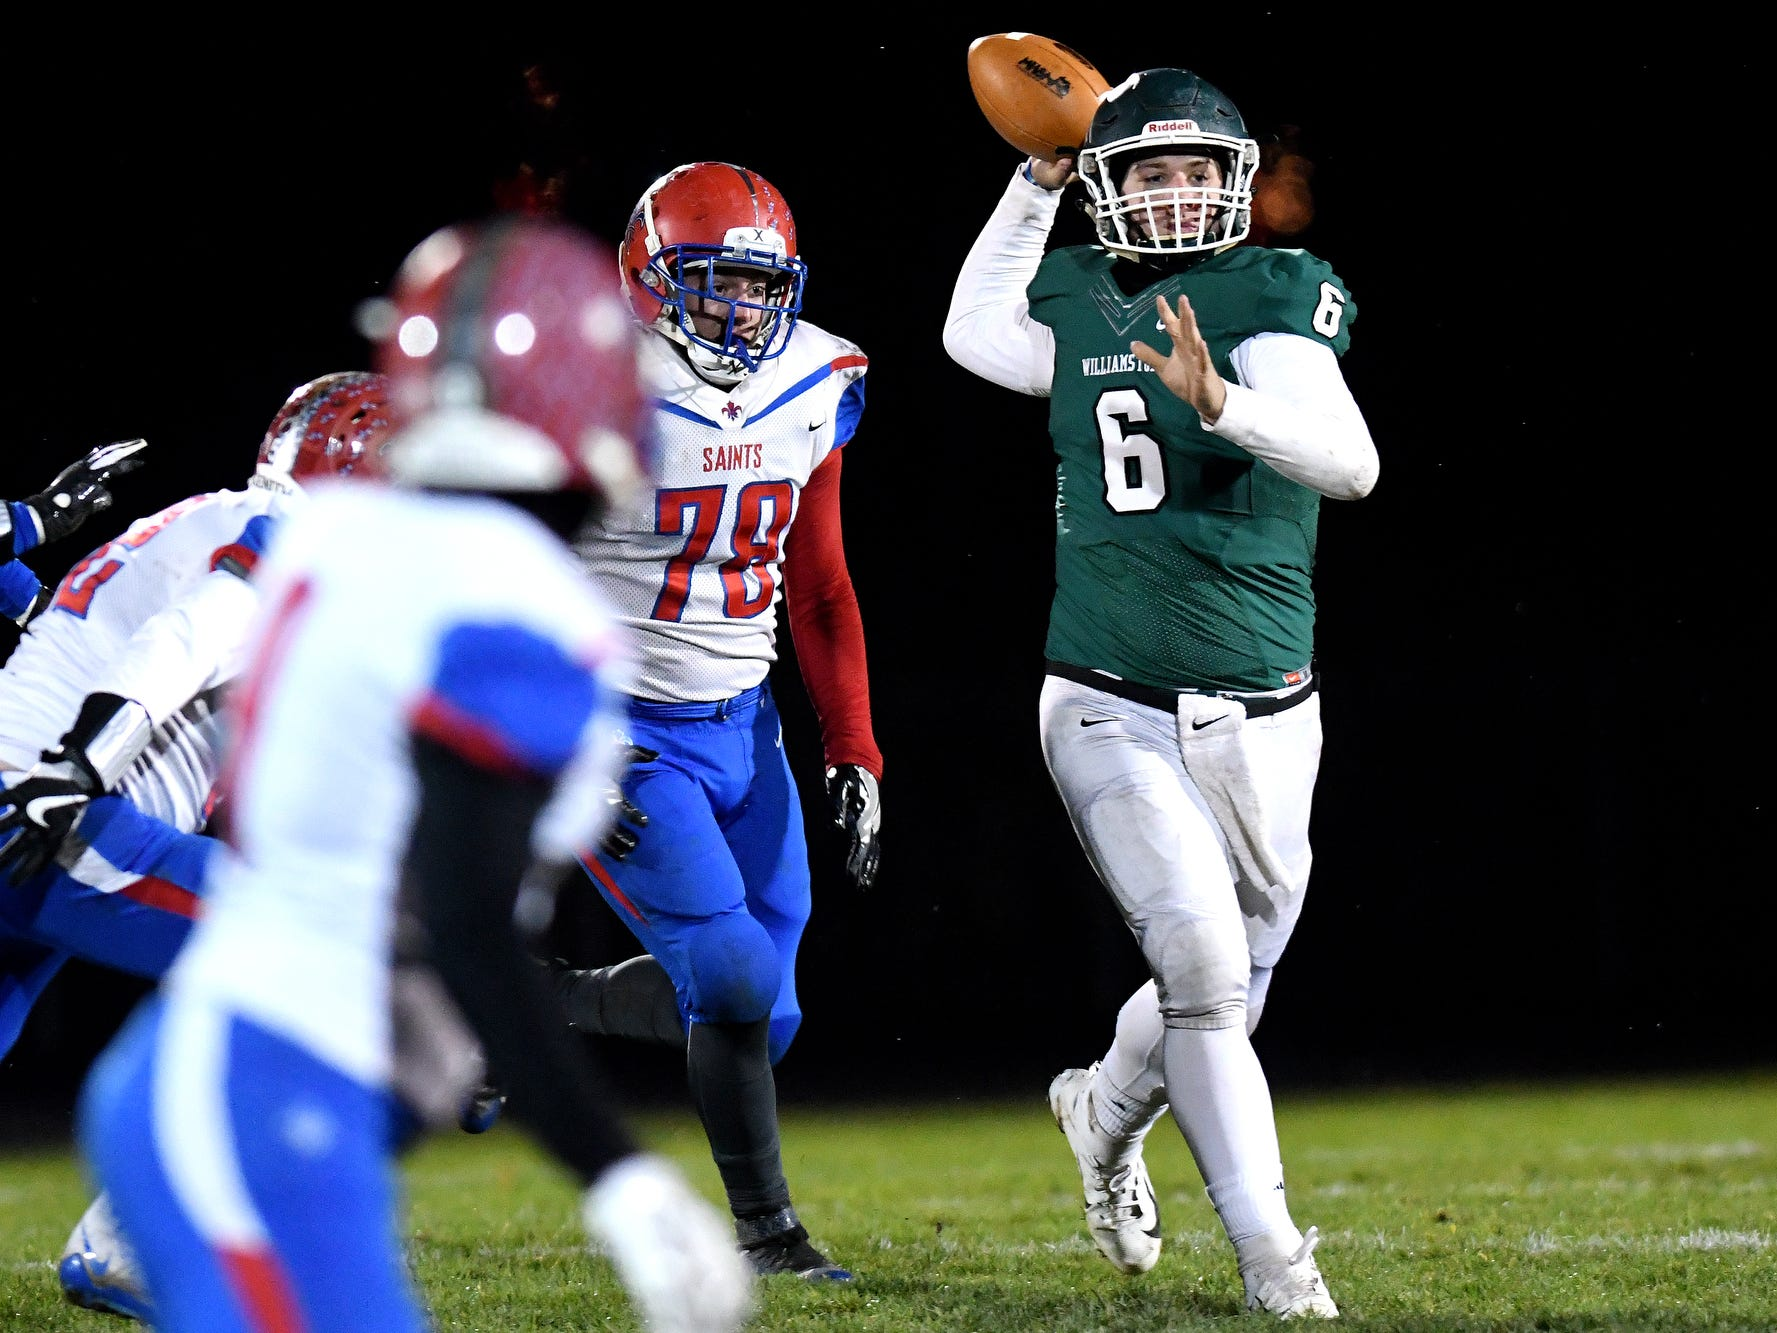 Williamston's Austin Stiffler, right, throws a touchdown pass to Carey Haney as St. Clair's Lance Schweihofer closes in during the first quarter on Friday, Nov. 9, 2018, in Williamston.